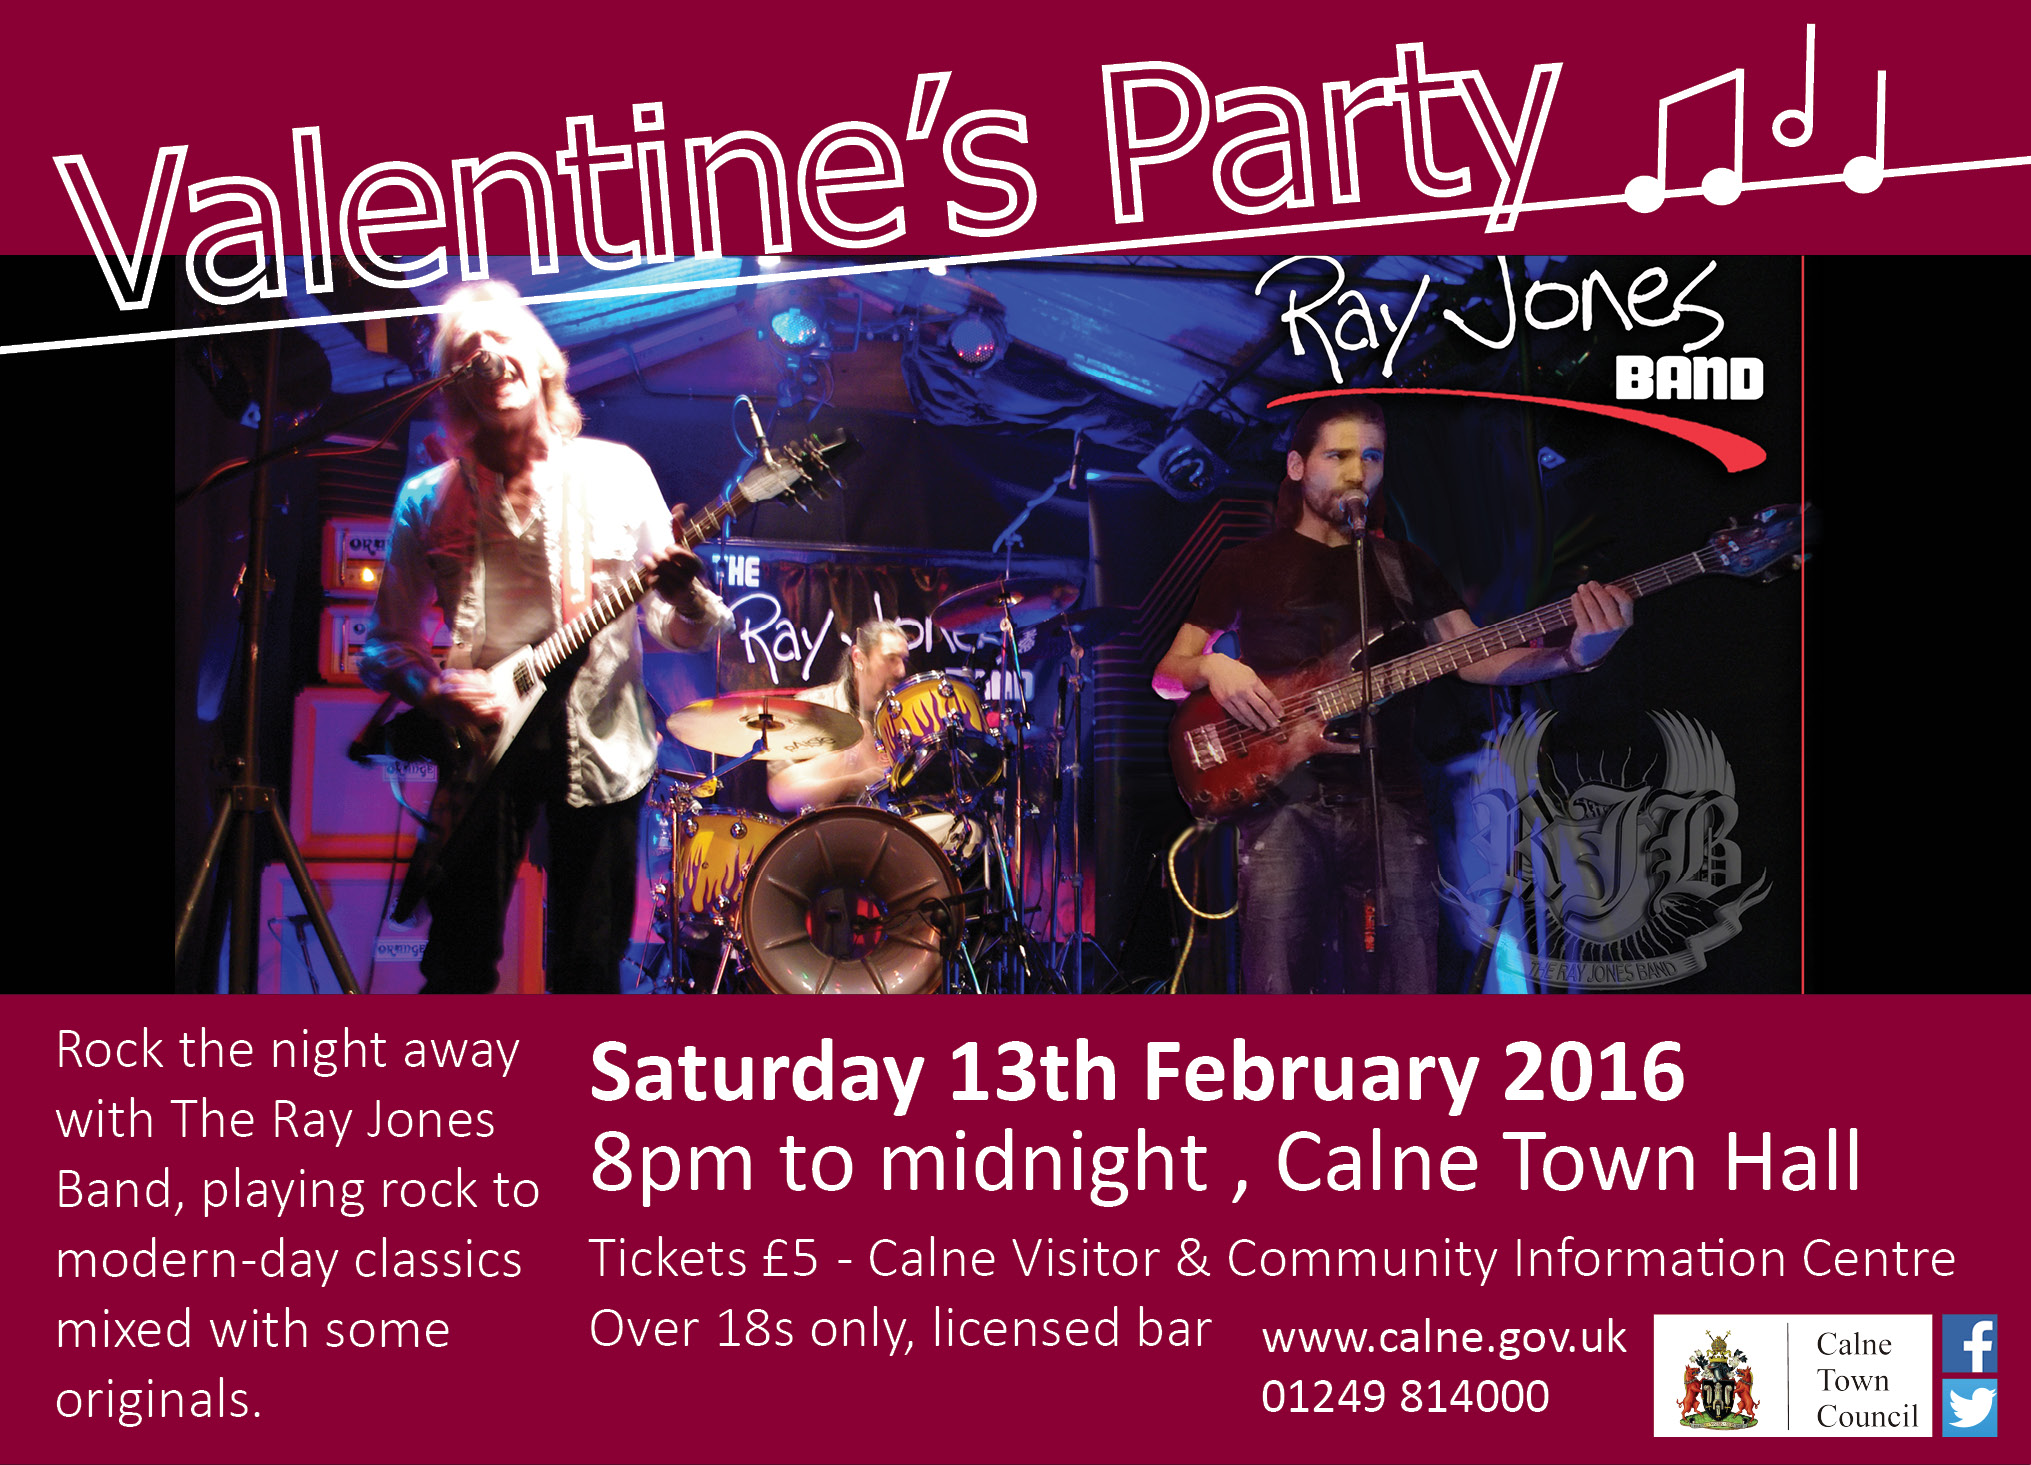 Valentine's Party with The Ray Jones Band